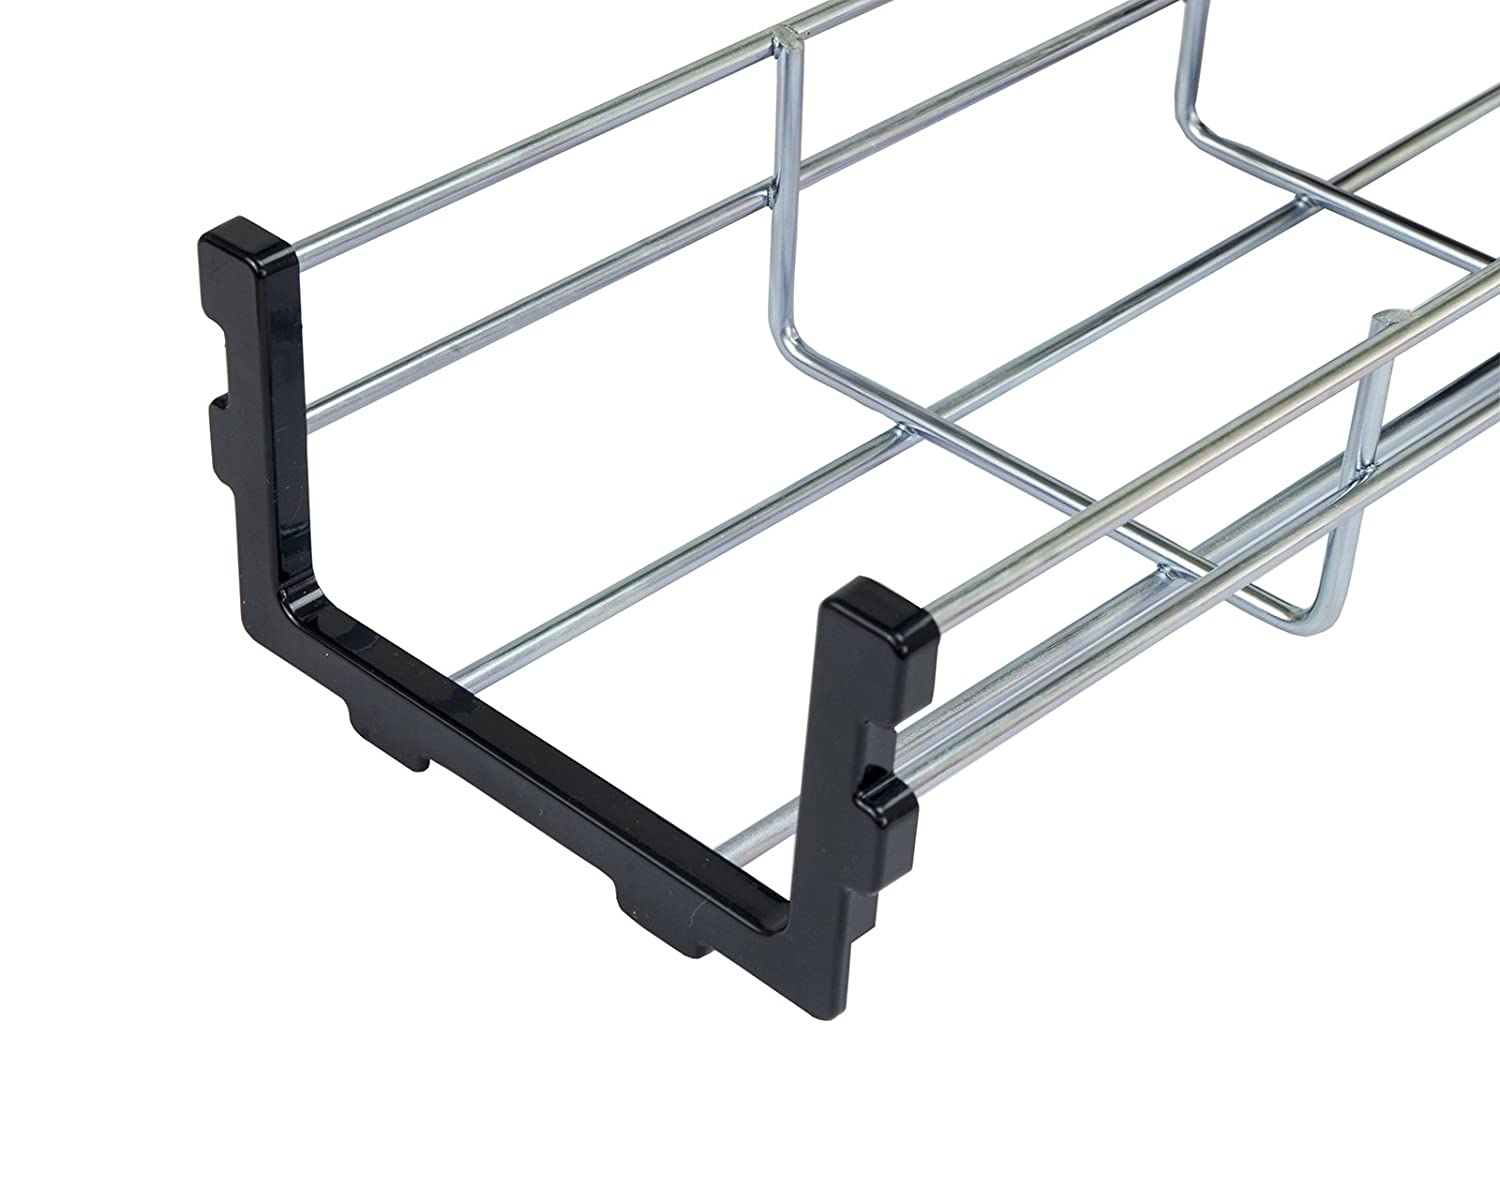 Supporto cavi Cover /& End cap 3 Pack of 140cm Long Under Desk Basket Cable Tray Galvanized Steel Mesh Cord Management Rack w// Mounting Bracket